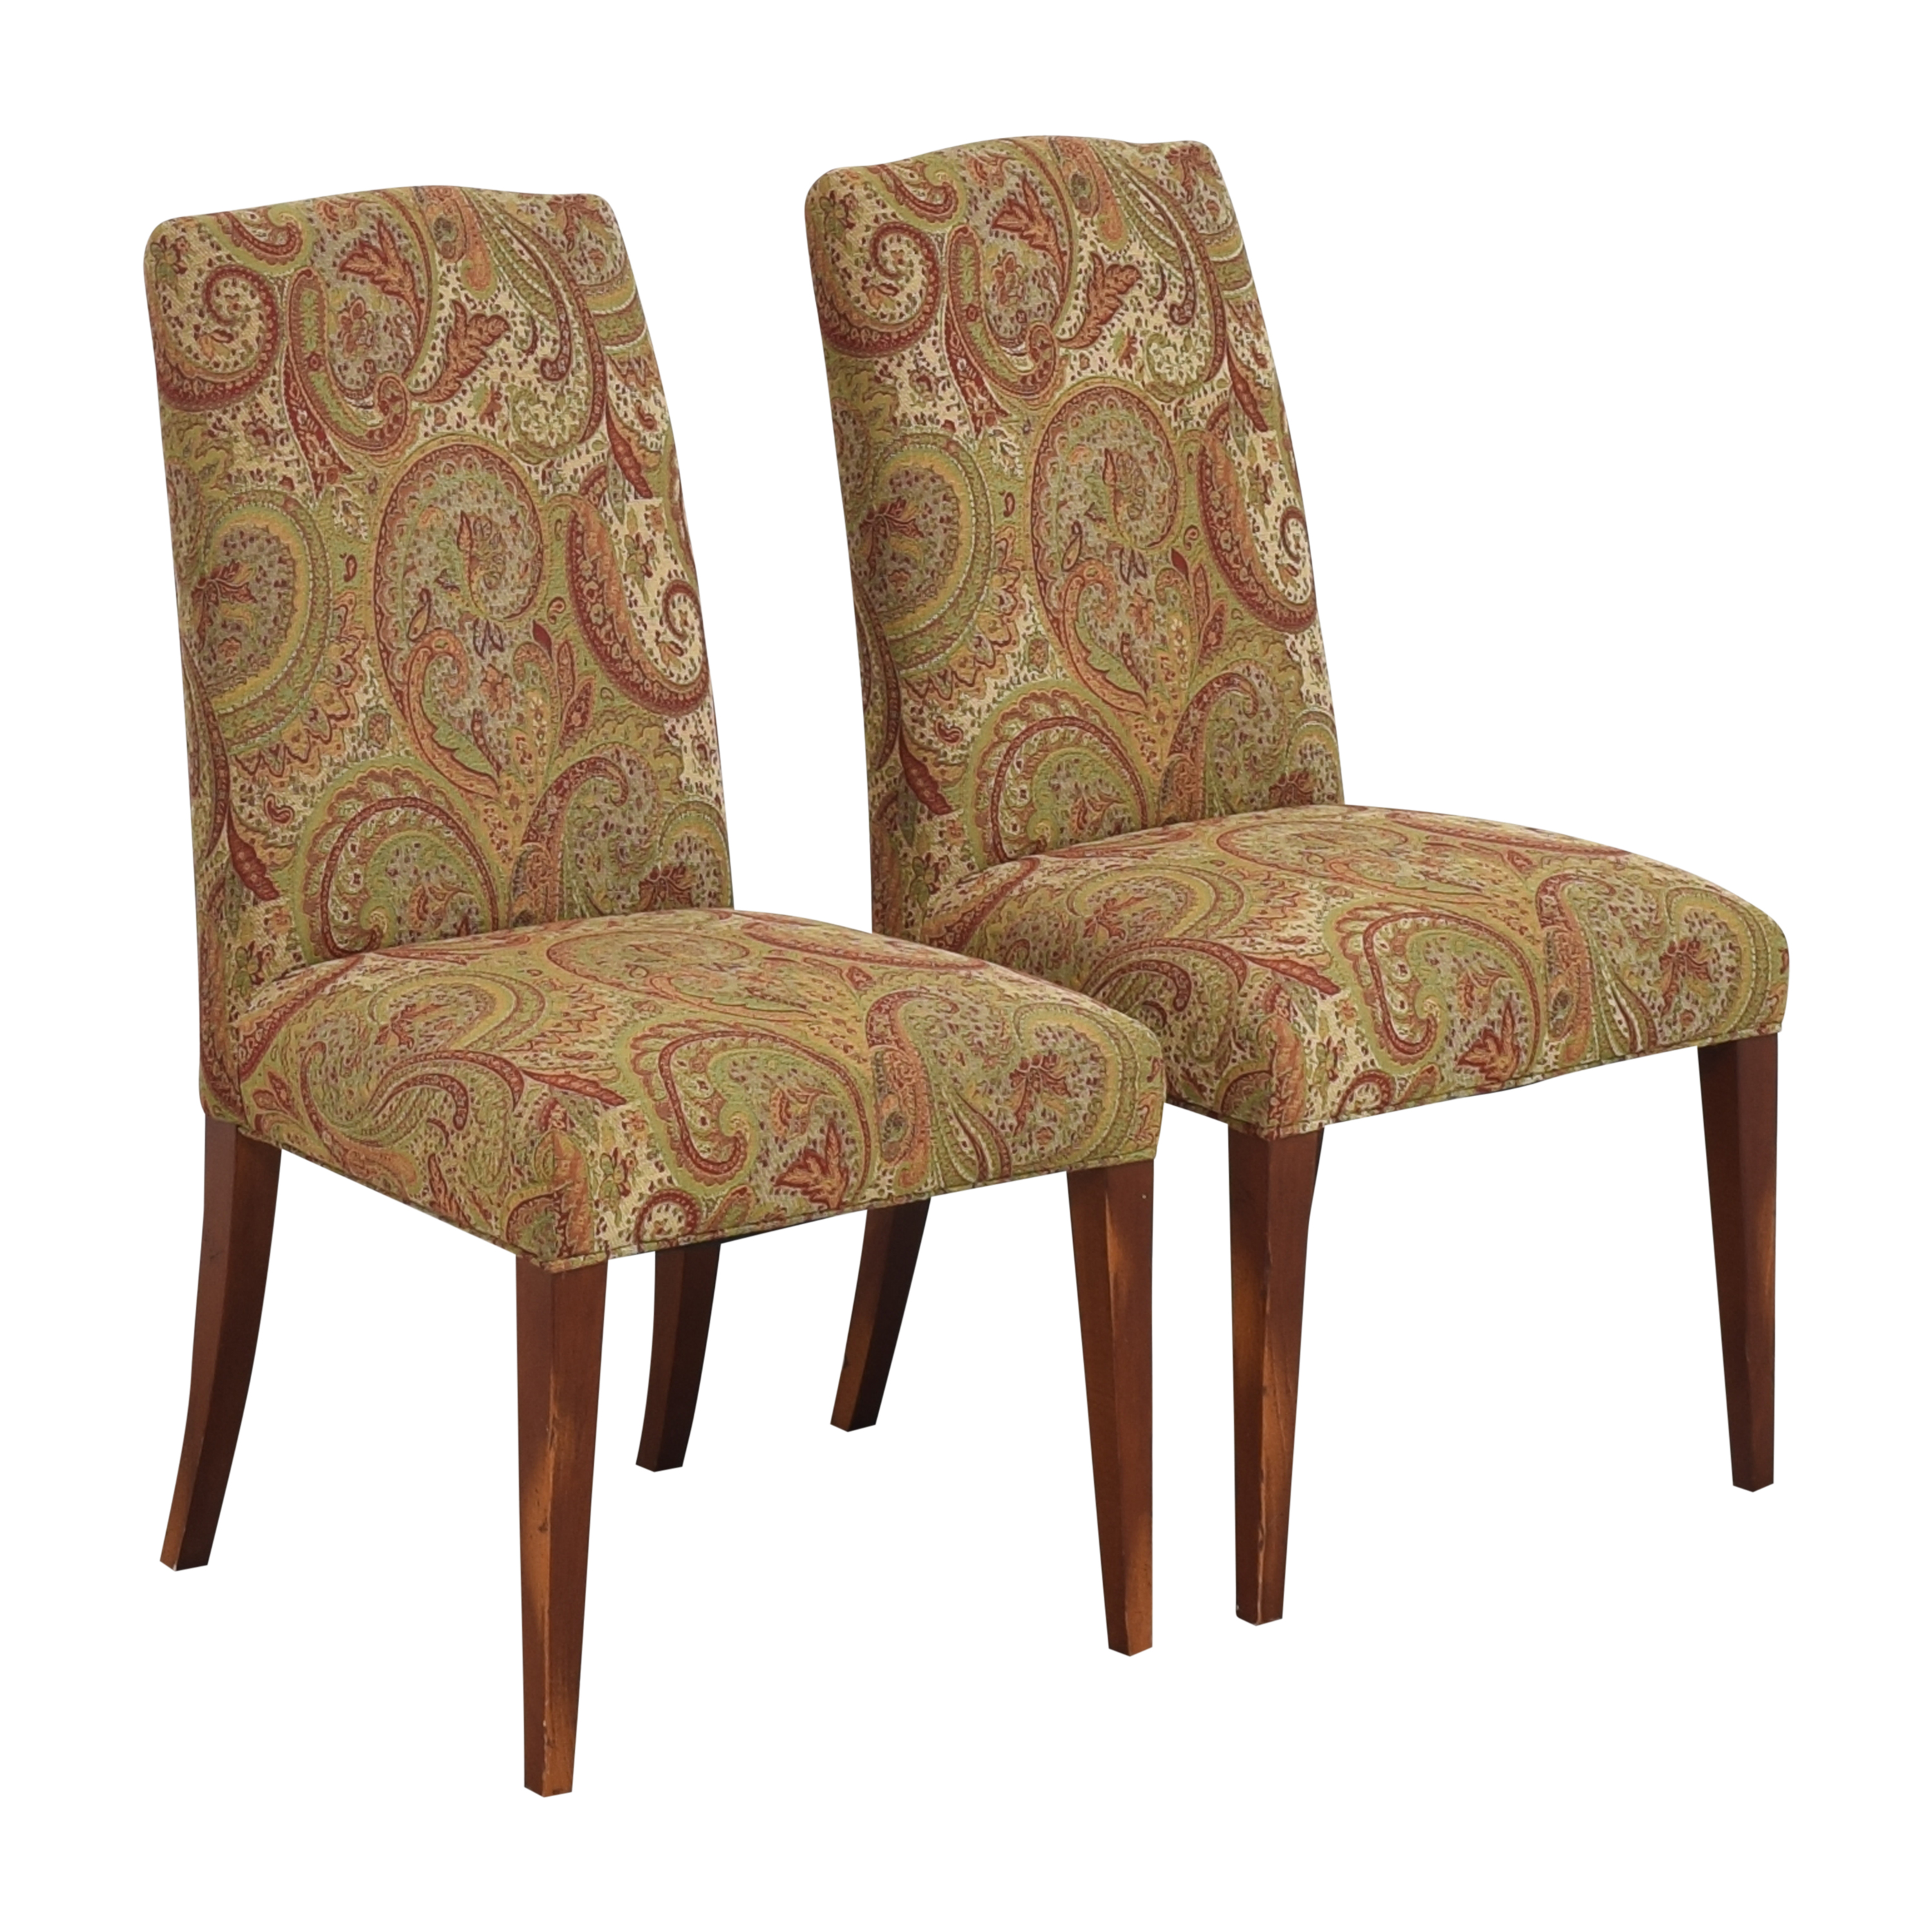 buy Saloom Model 61 Upholstered Dining Side Chairs Saloom Chairs